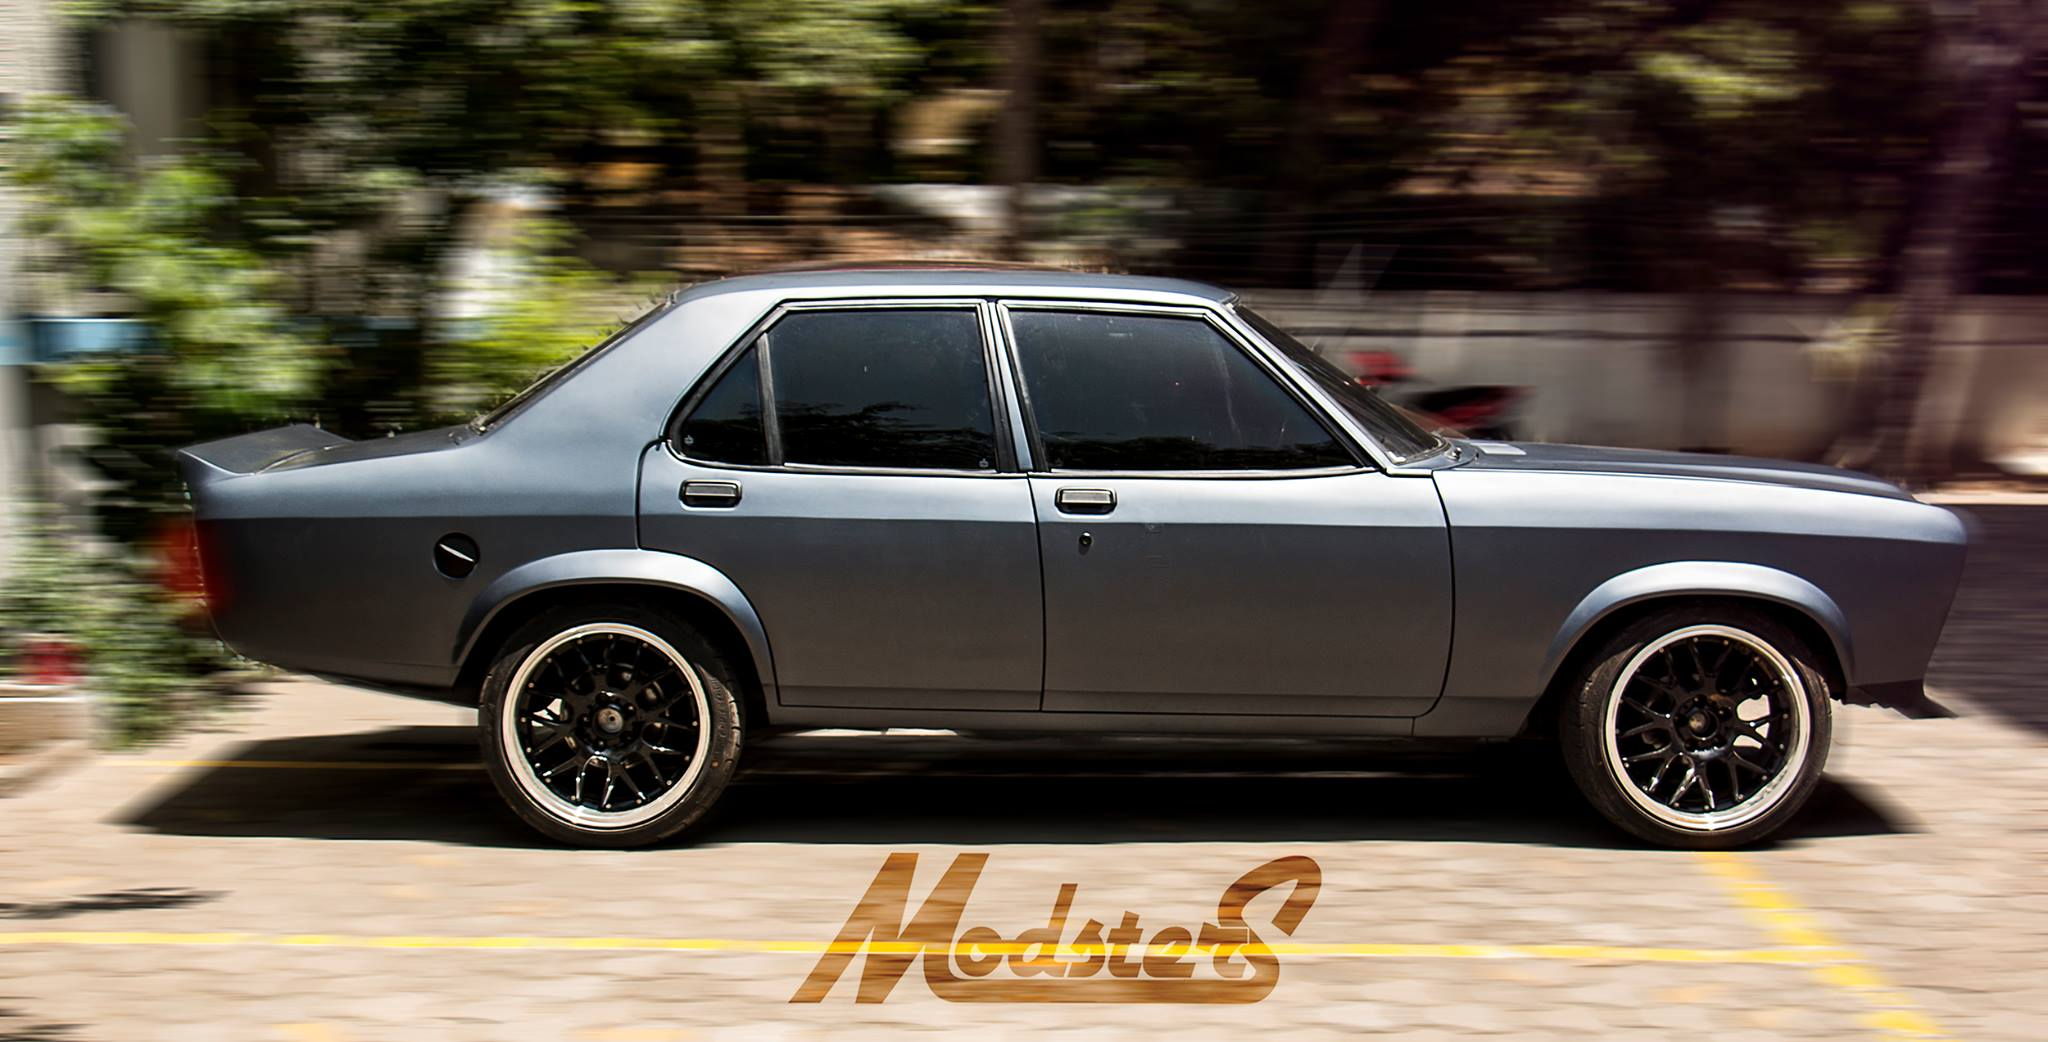 Modified Contessa Car in India with Images and All Details on ...